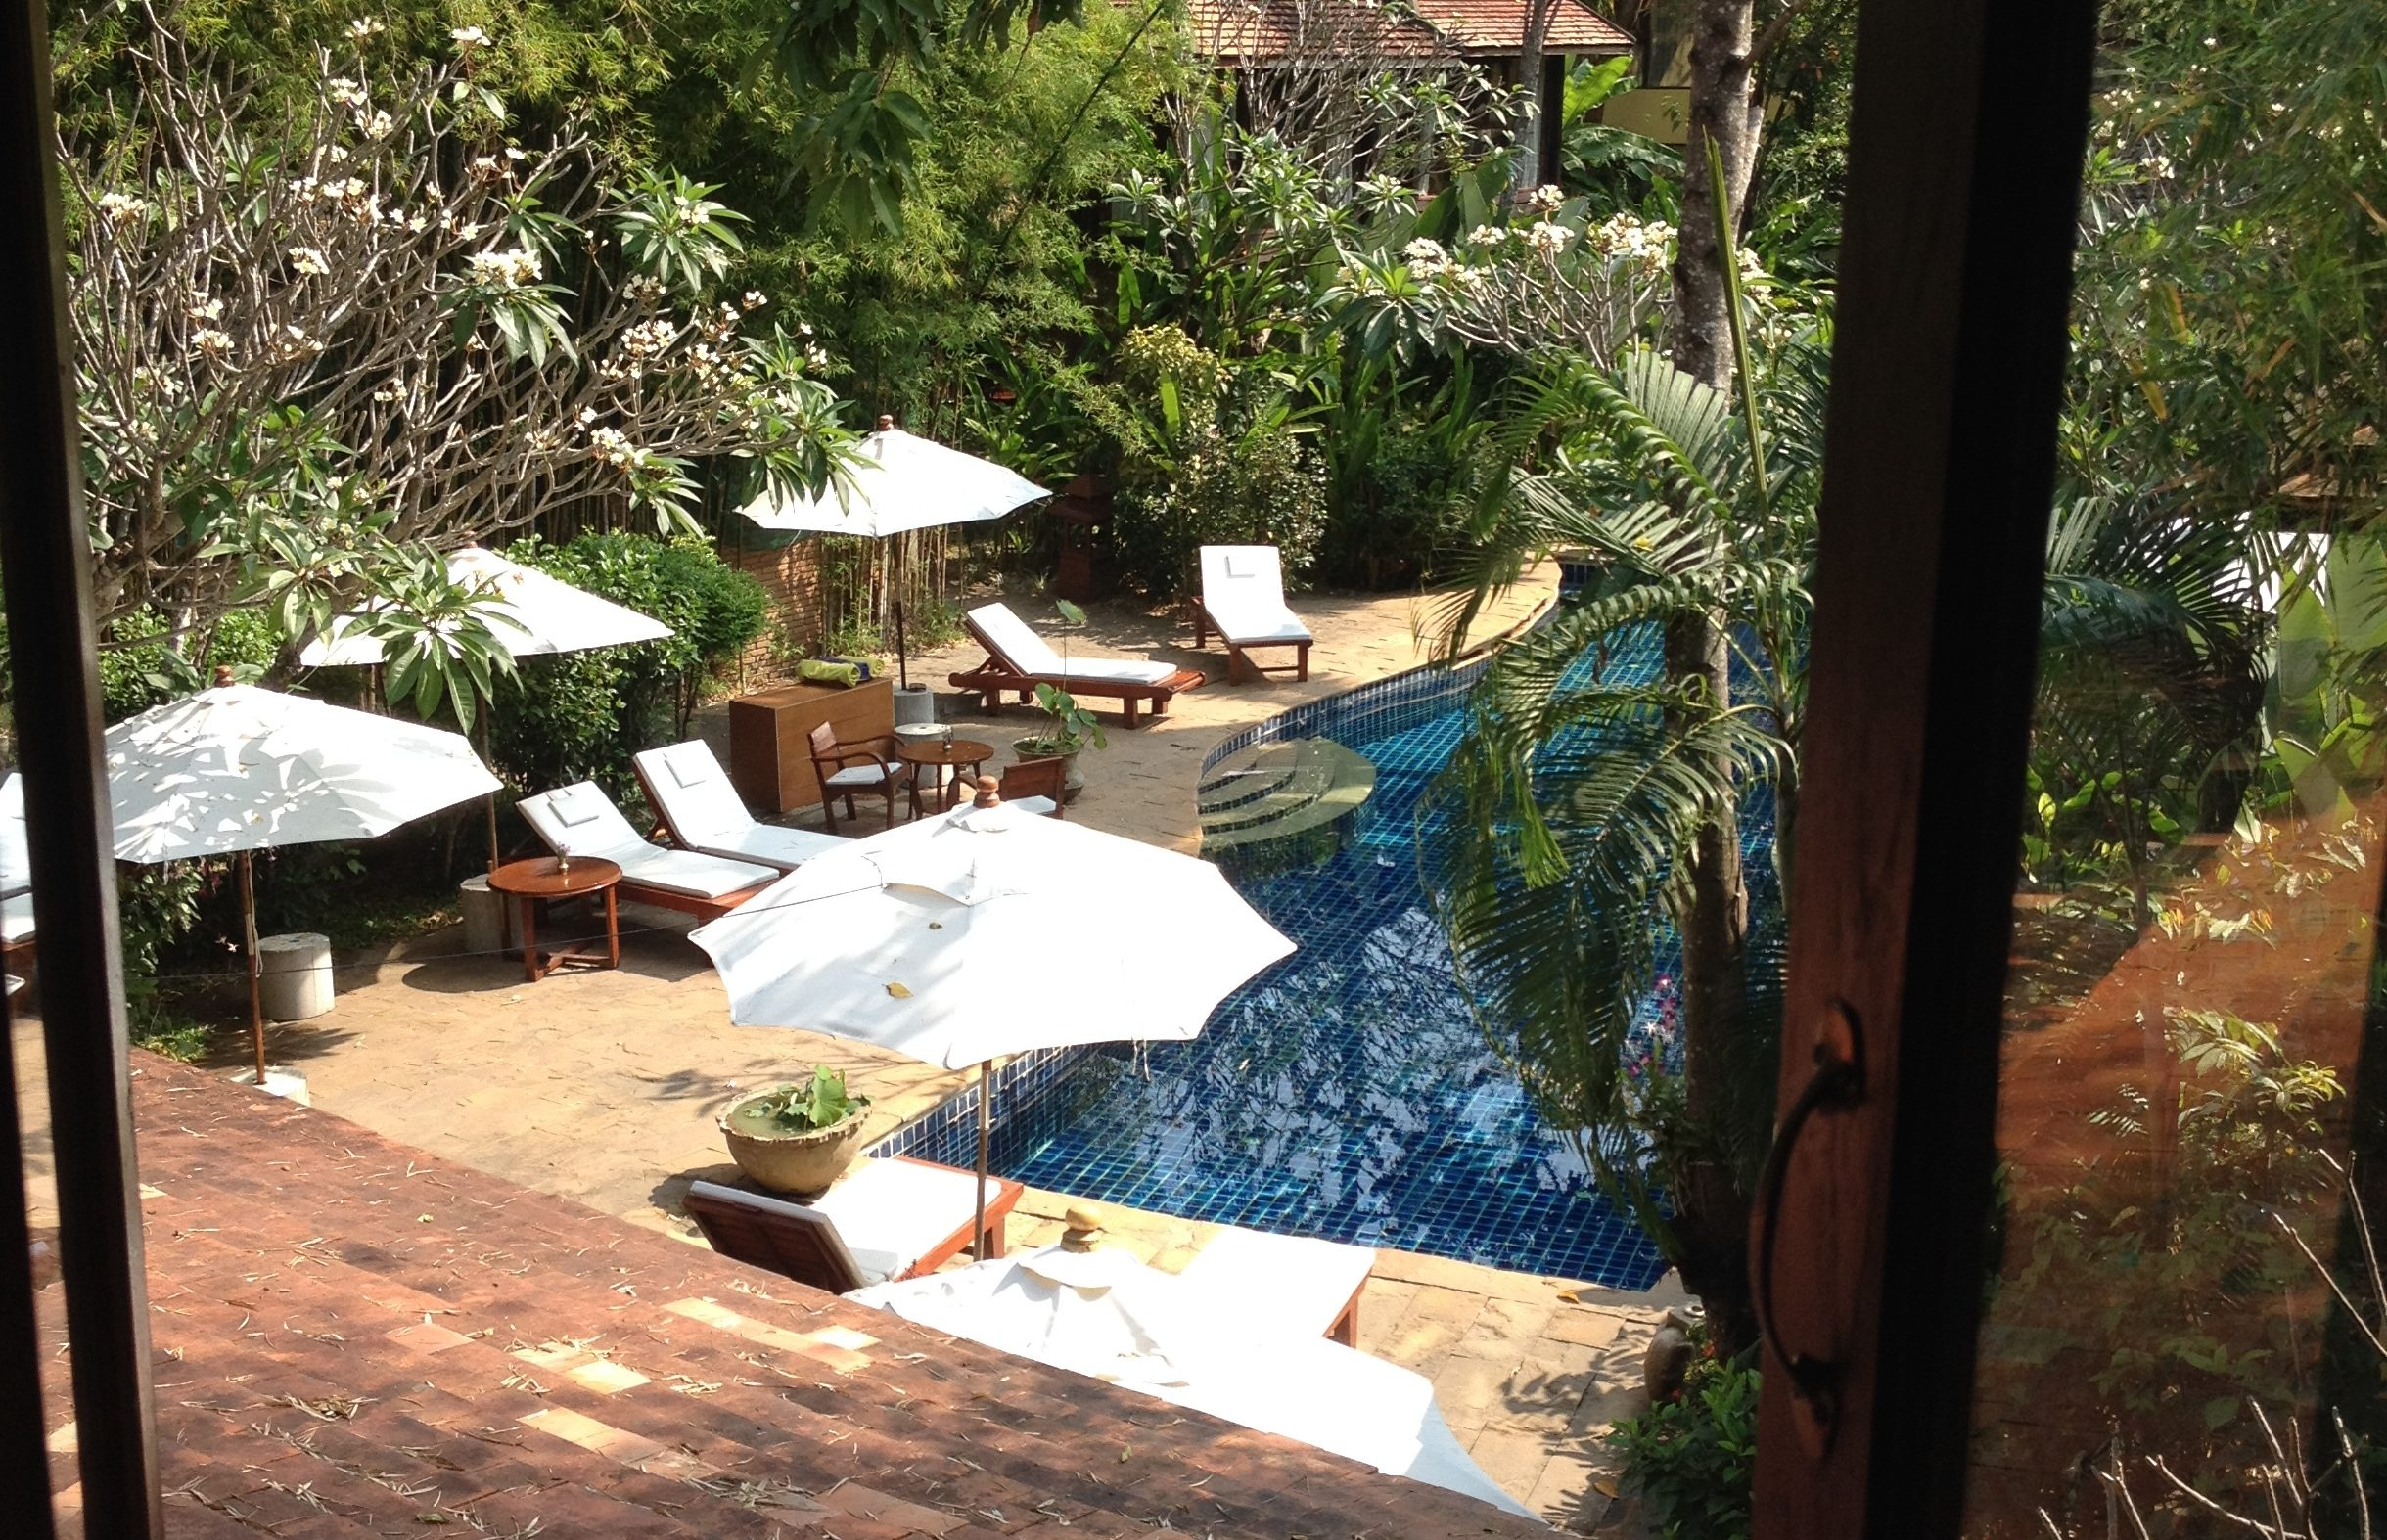 Best place to stay in Chiang Mai - find out at wanderdolls.com